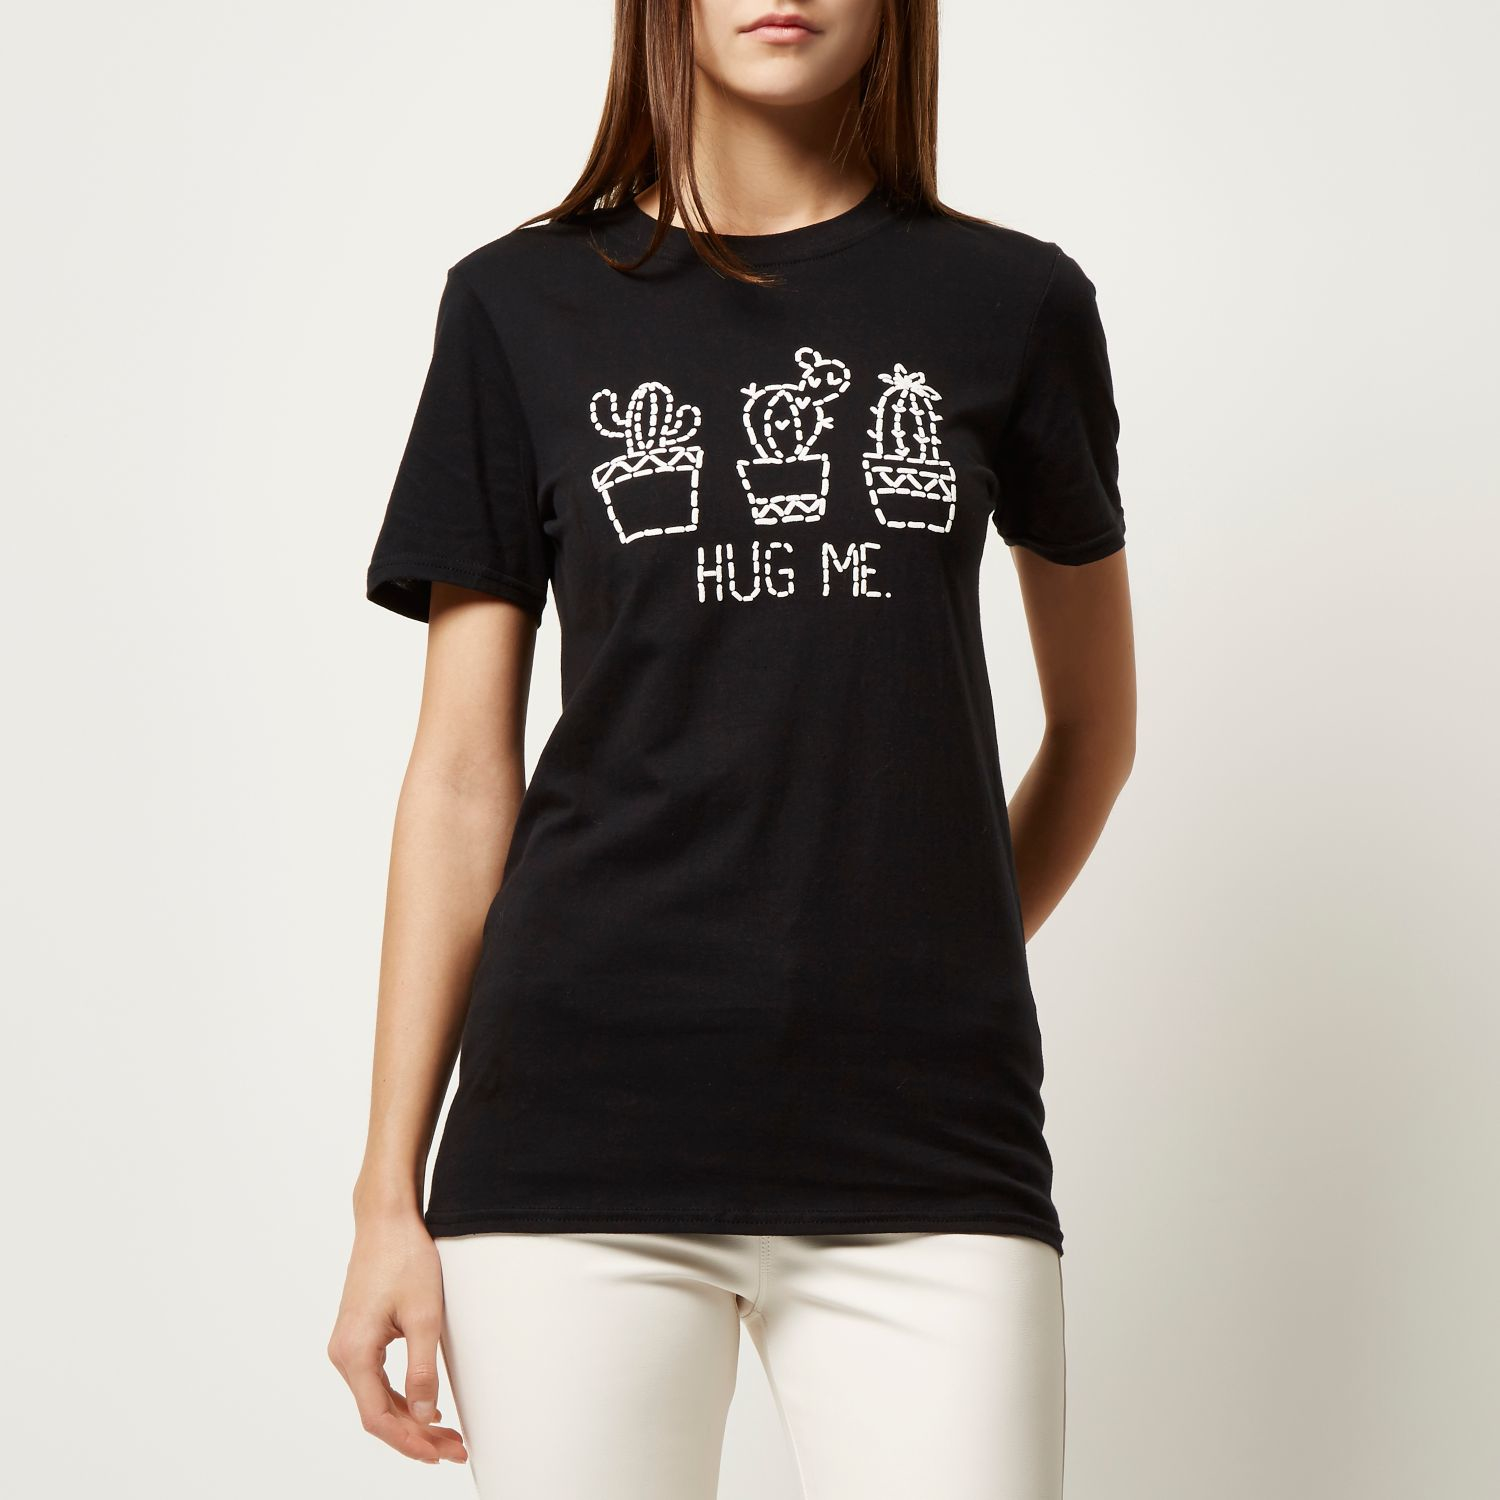 f327a9a276 River Island Black Cactus Print Oversized T-shirt in Black - Lyst